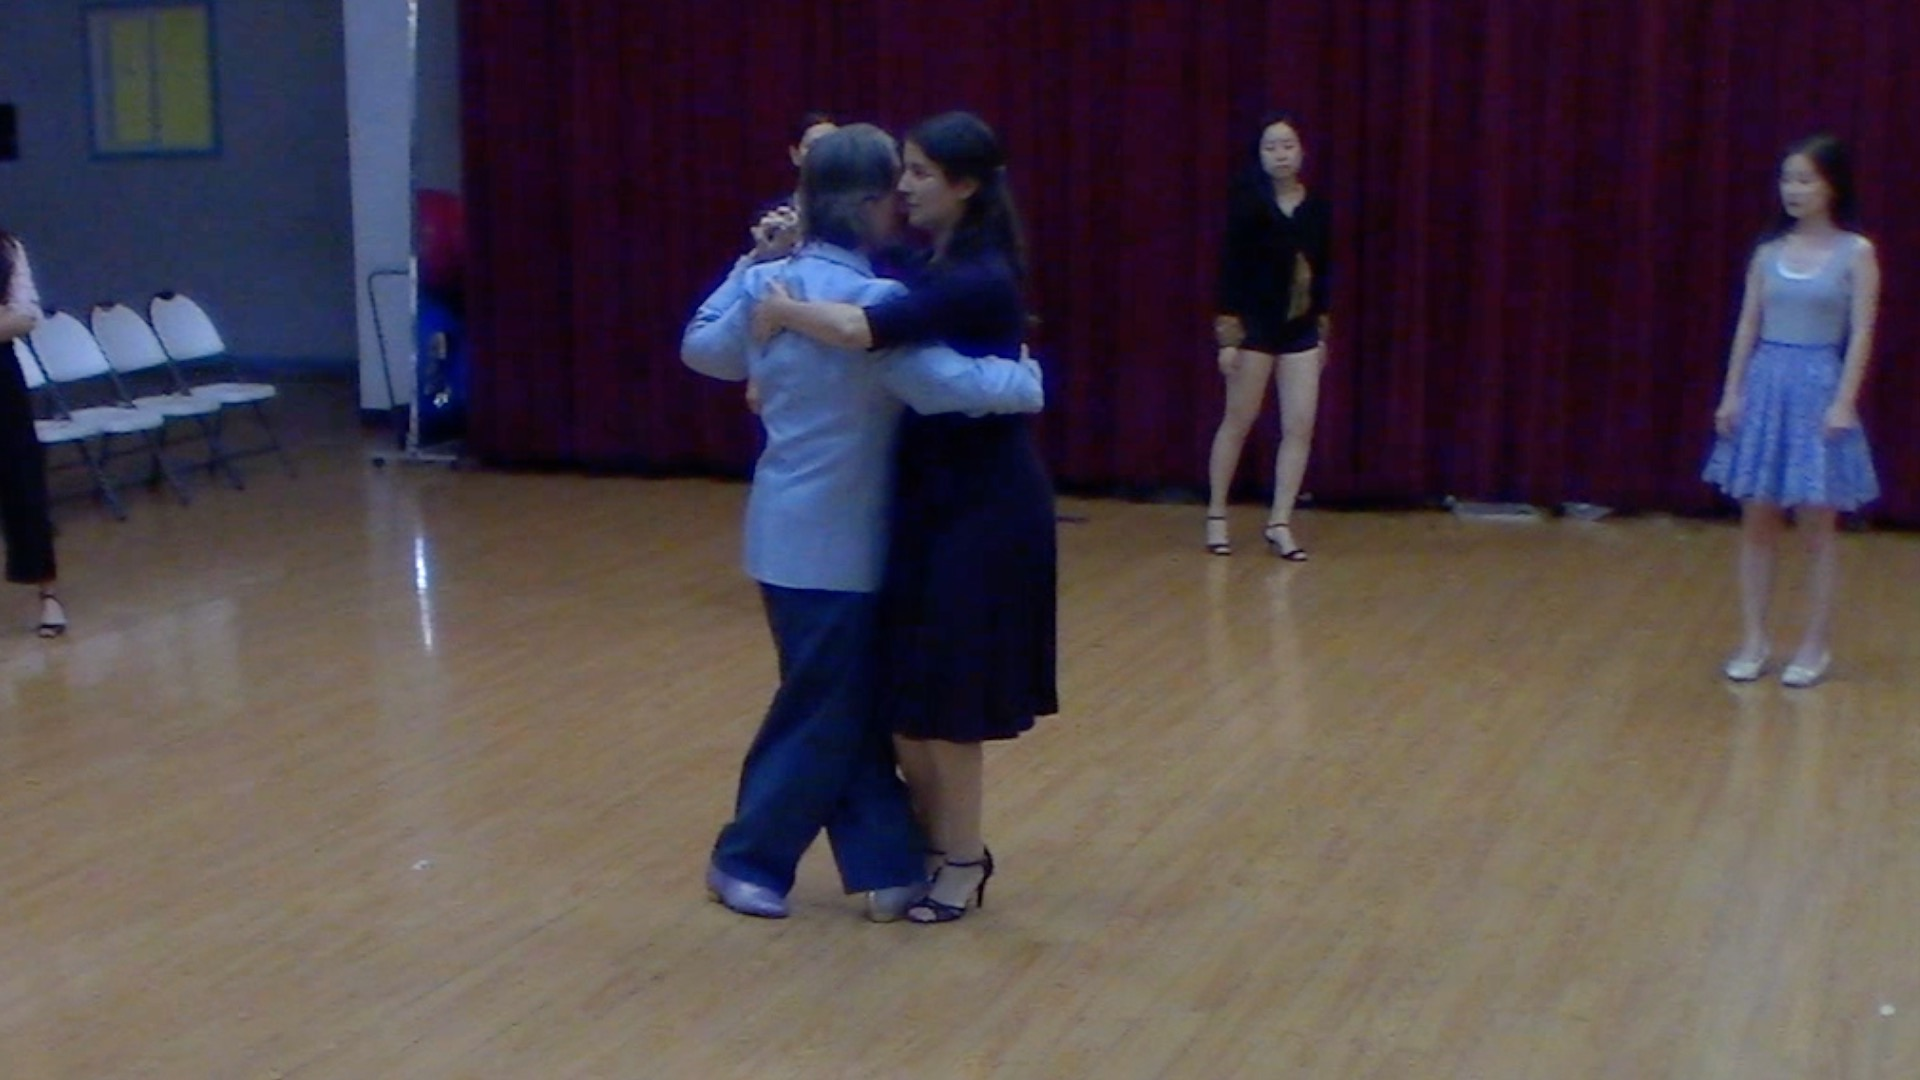 Argentine Tango Dancing with Mimi at beginner's class in San Jose, California, September 2019